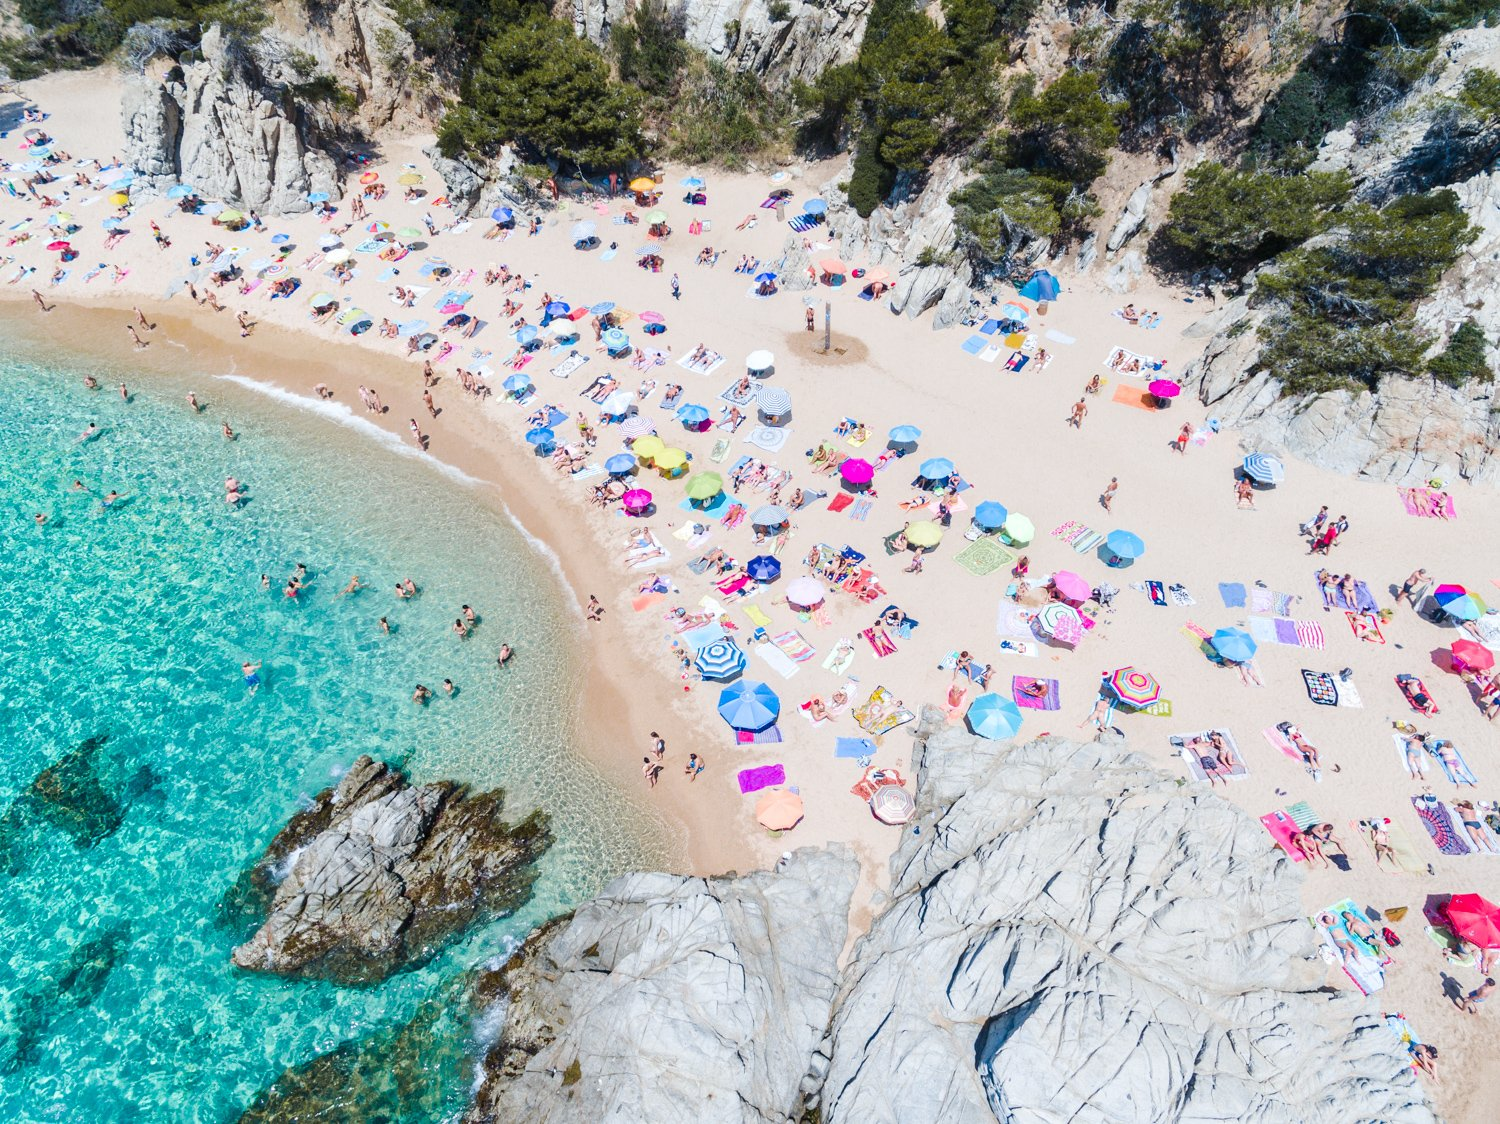 Colorful umbrellas and people lying on beach taken from the sky